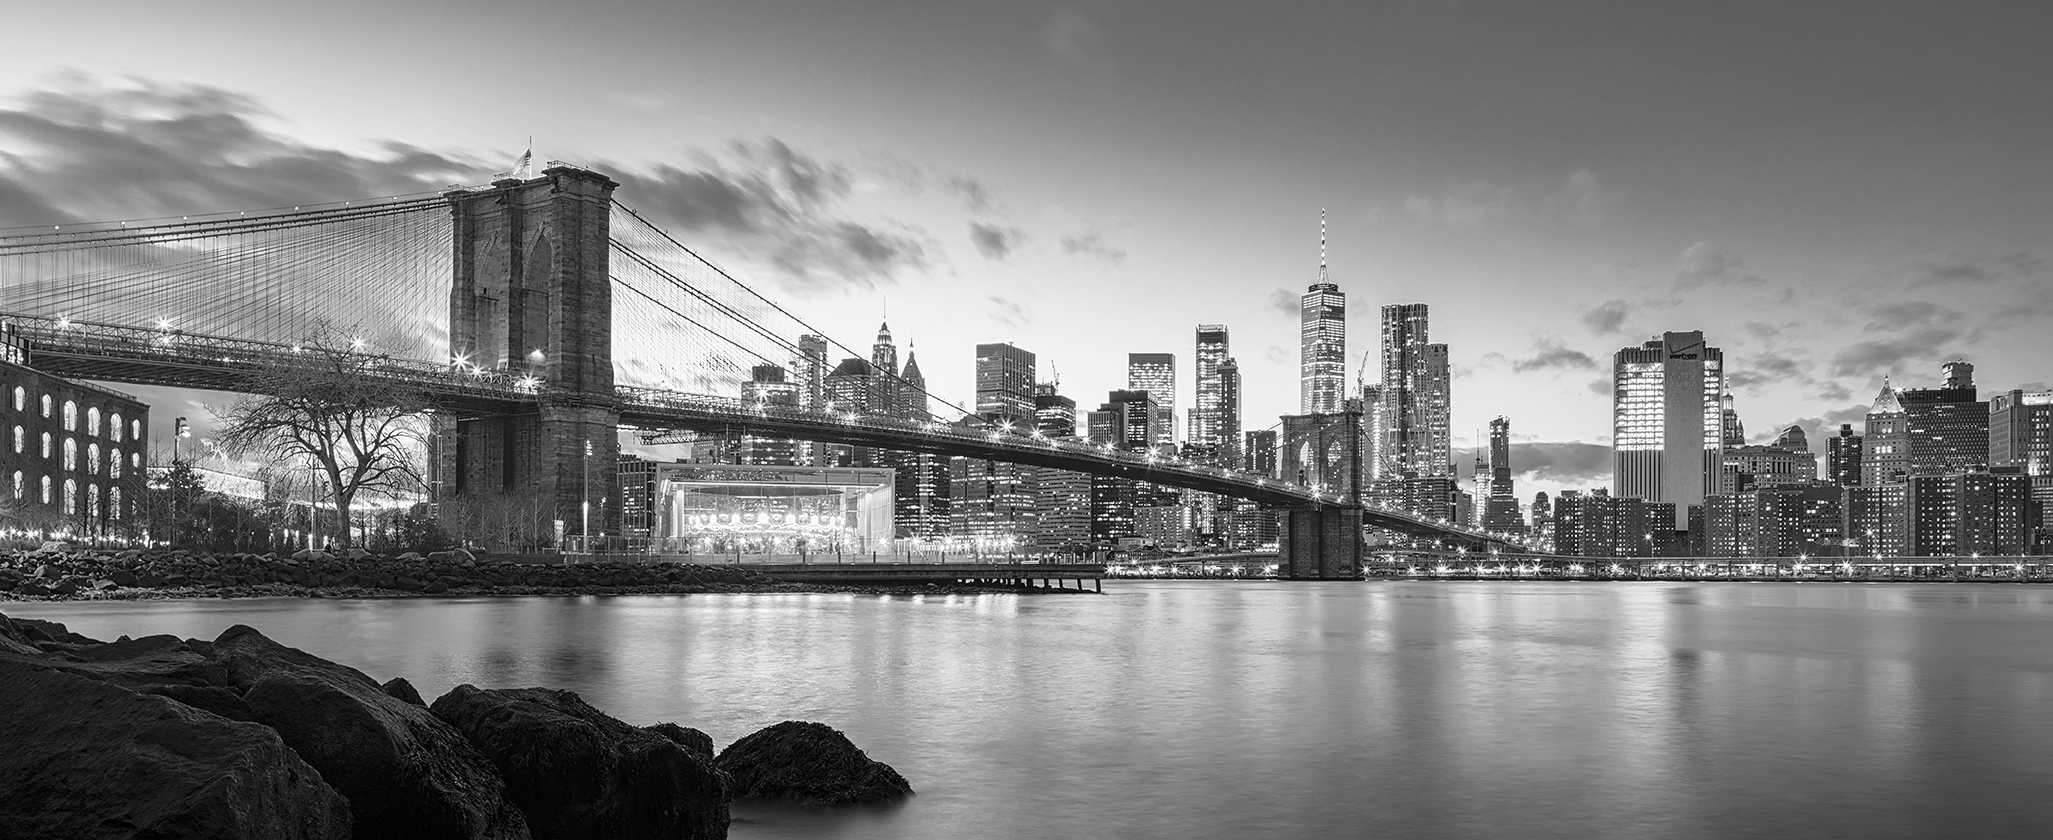 BrooklynBridge_New_bw.jpg